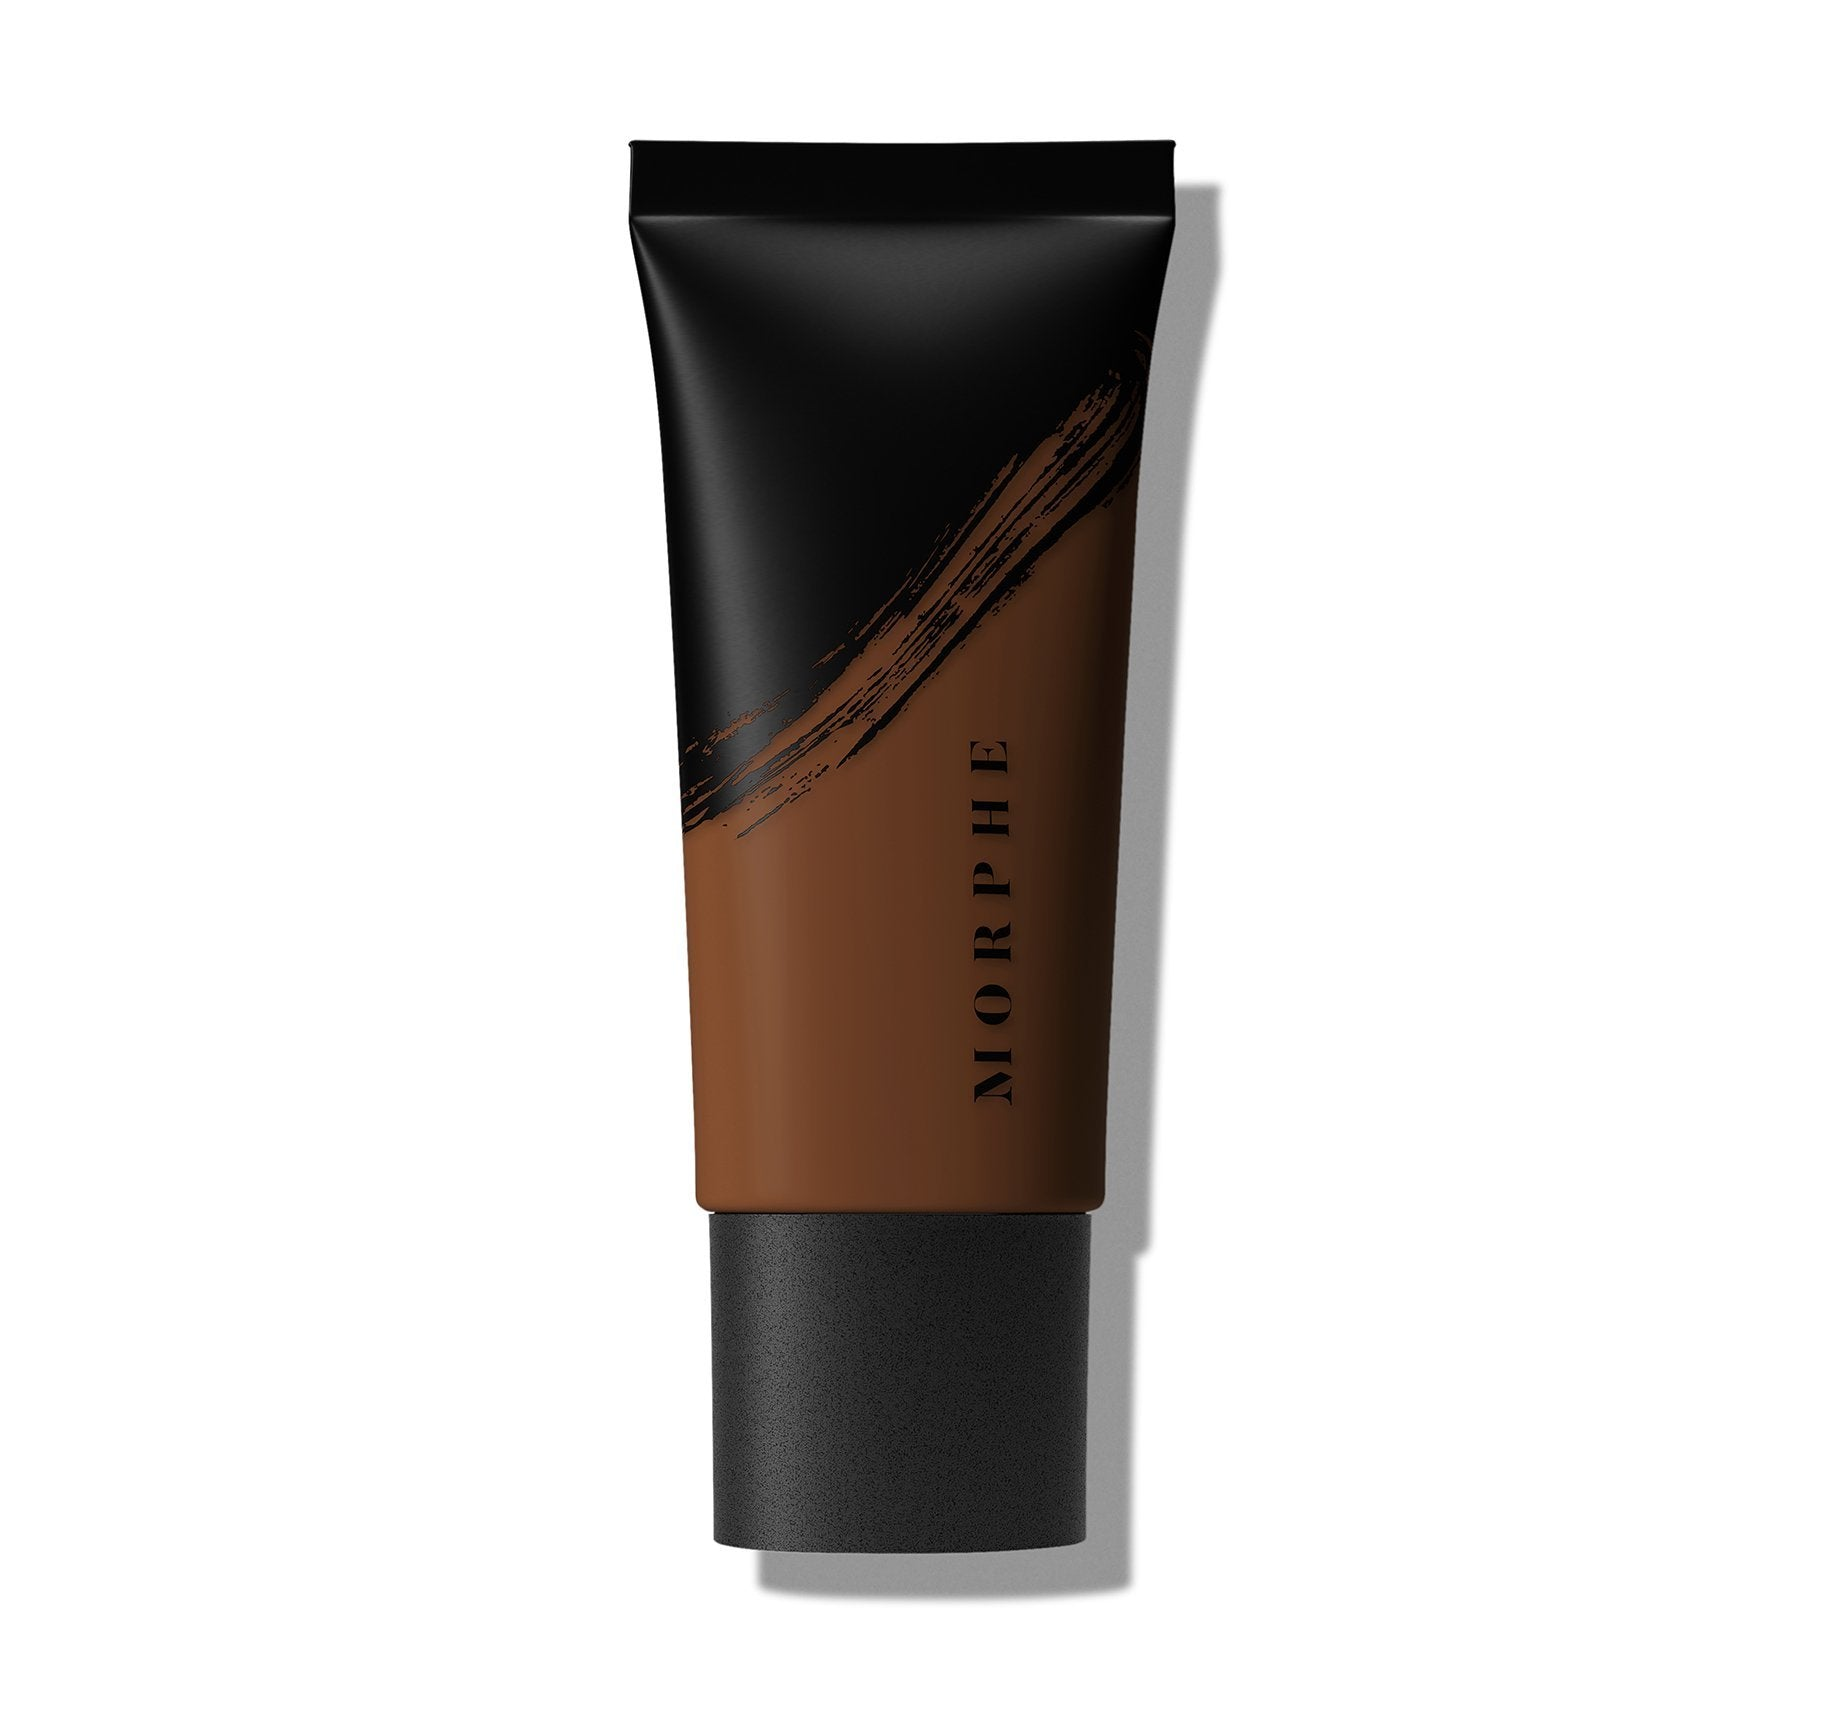 FLUIDITY FULL-COVERAGE FOUNDATION - F5.39, view larger image